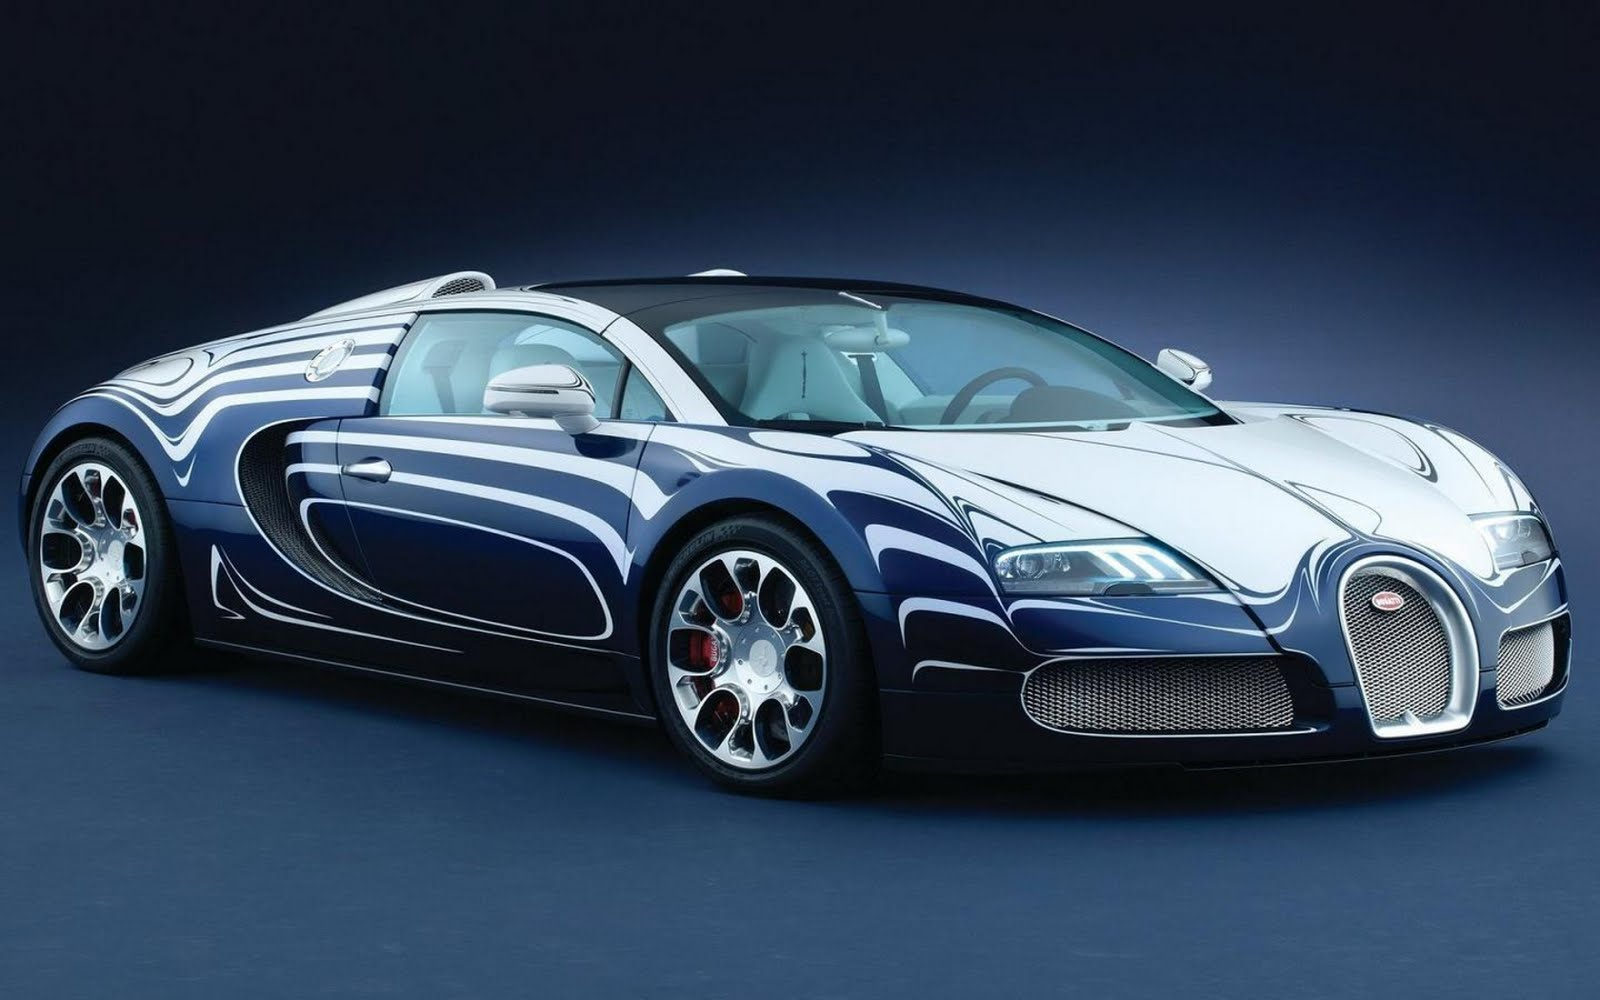 bugatti veyron grand sport l 39 or blanc hd desktop wallpaper. Black Bedroom Furniture Sets. Home Design Ideas